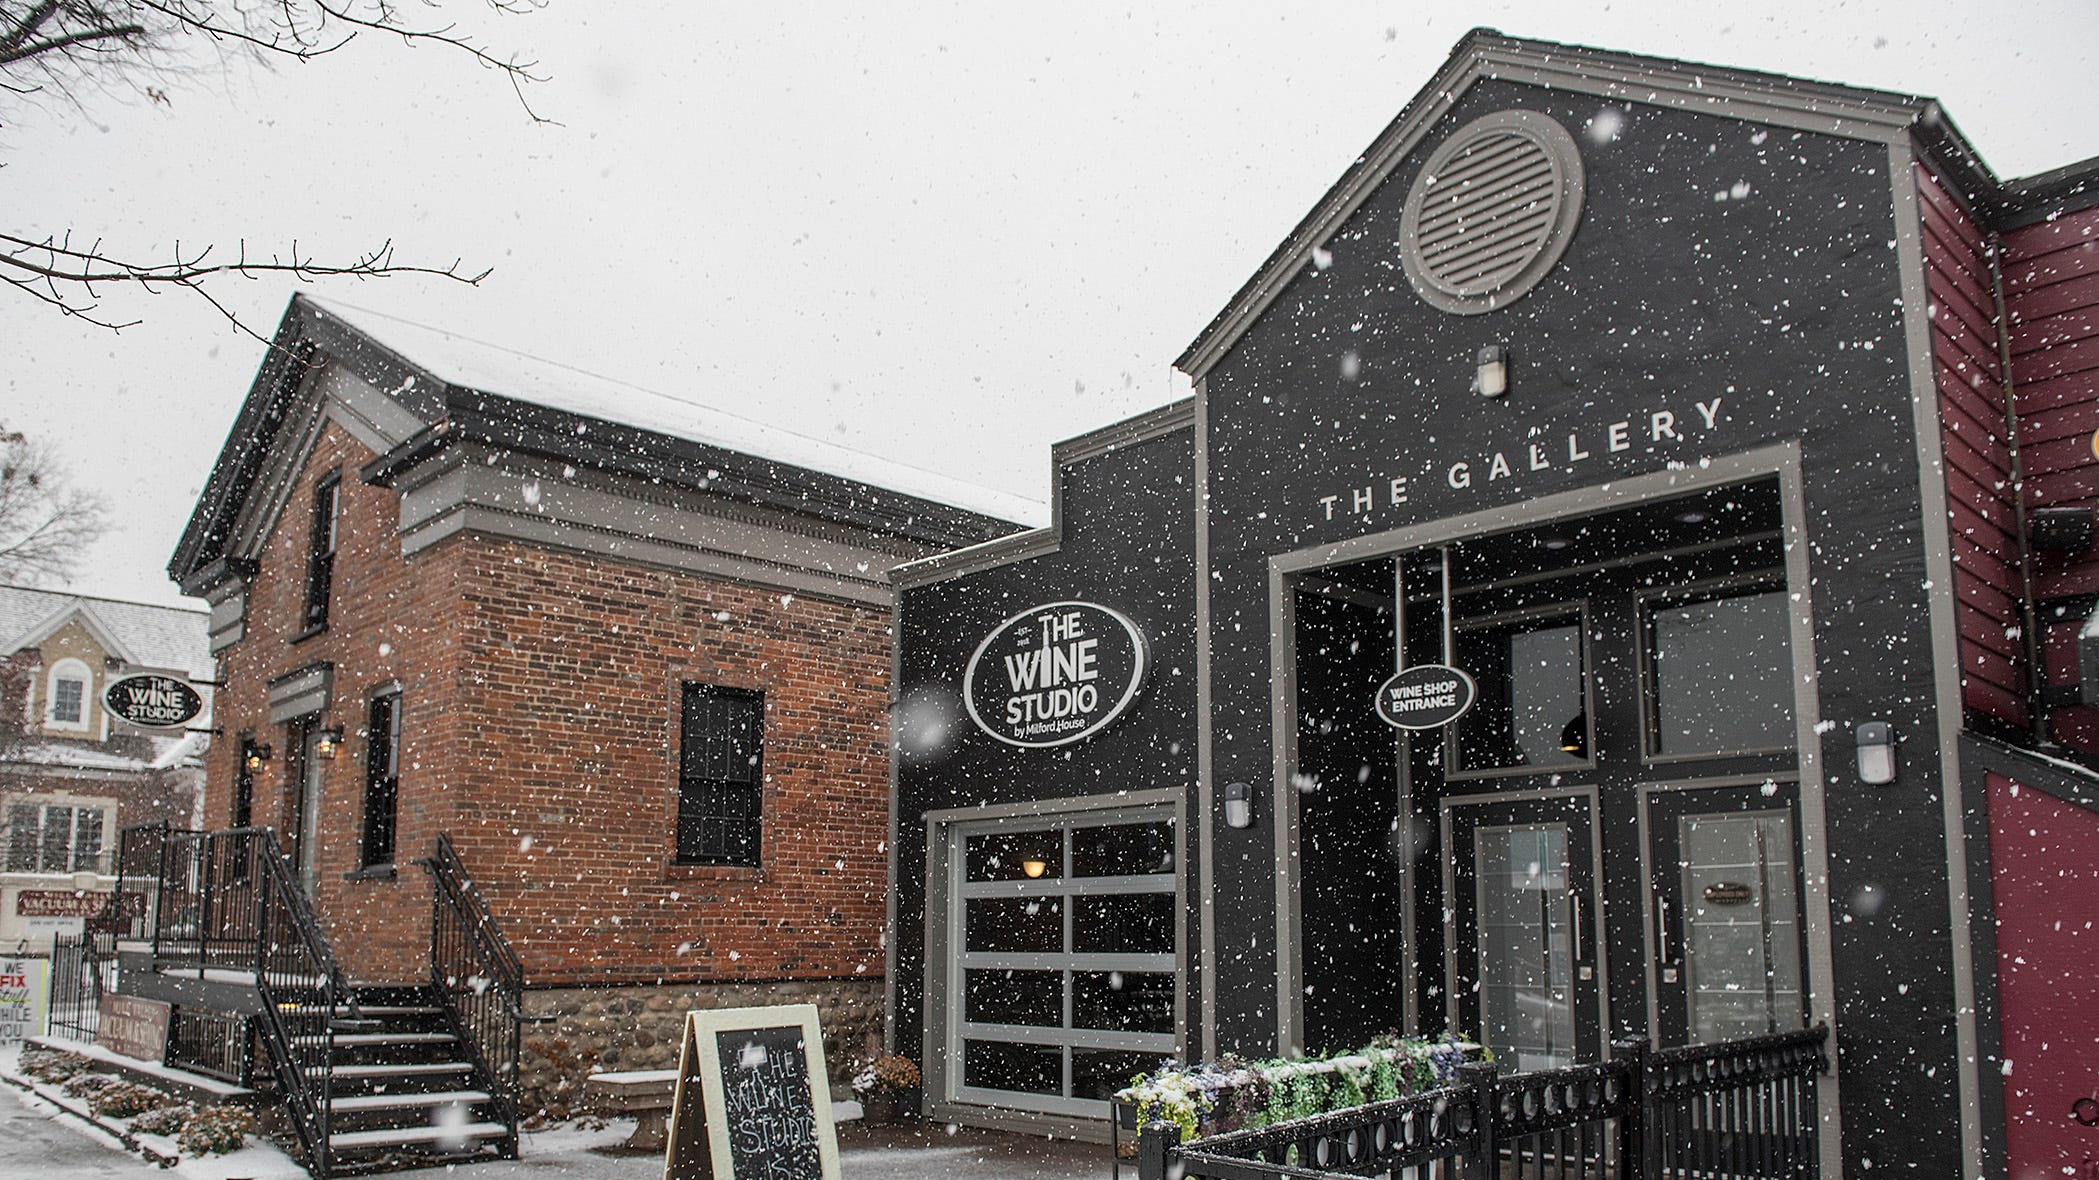 Welcome to the Wine Studio, located in downtown Milford.